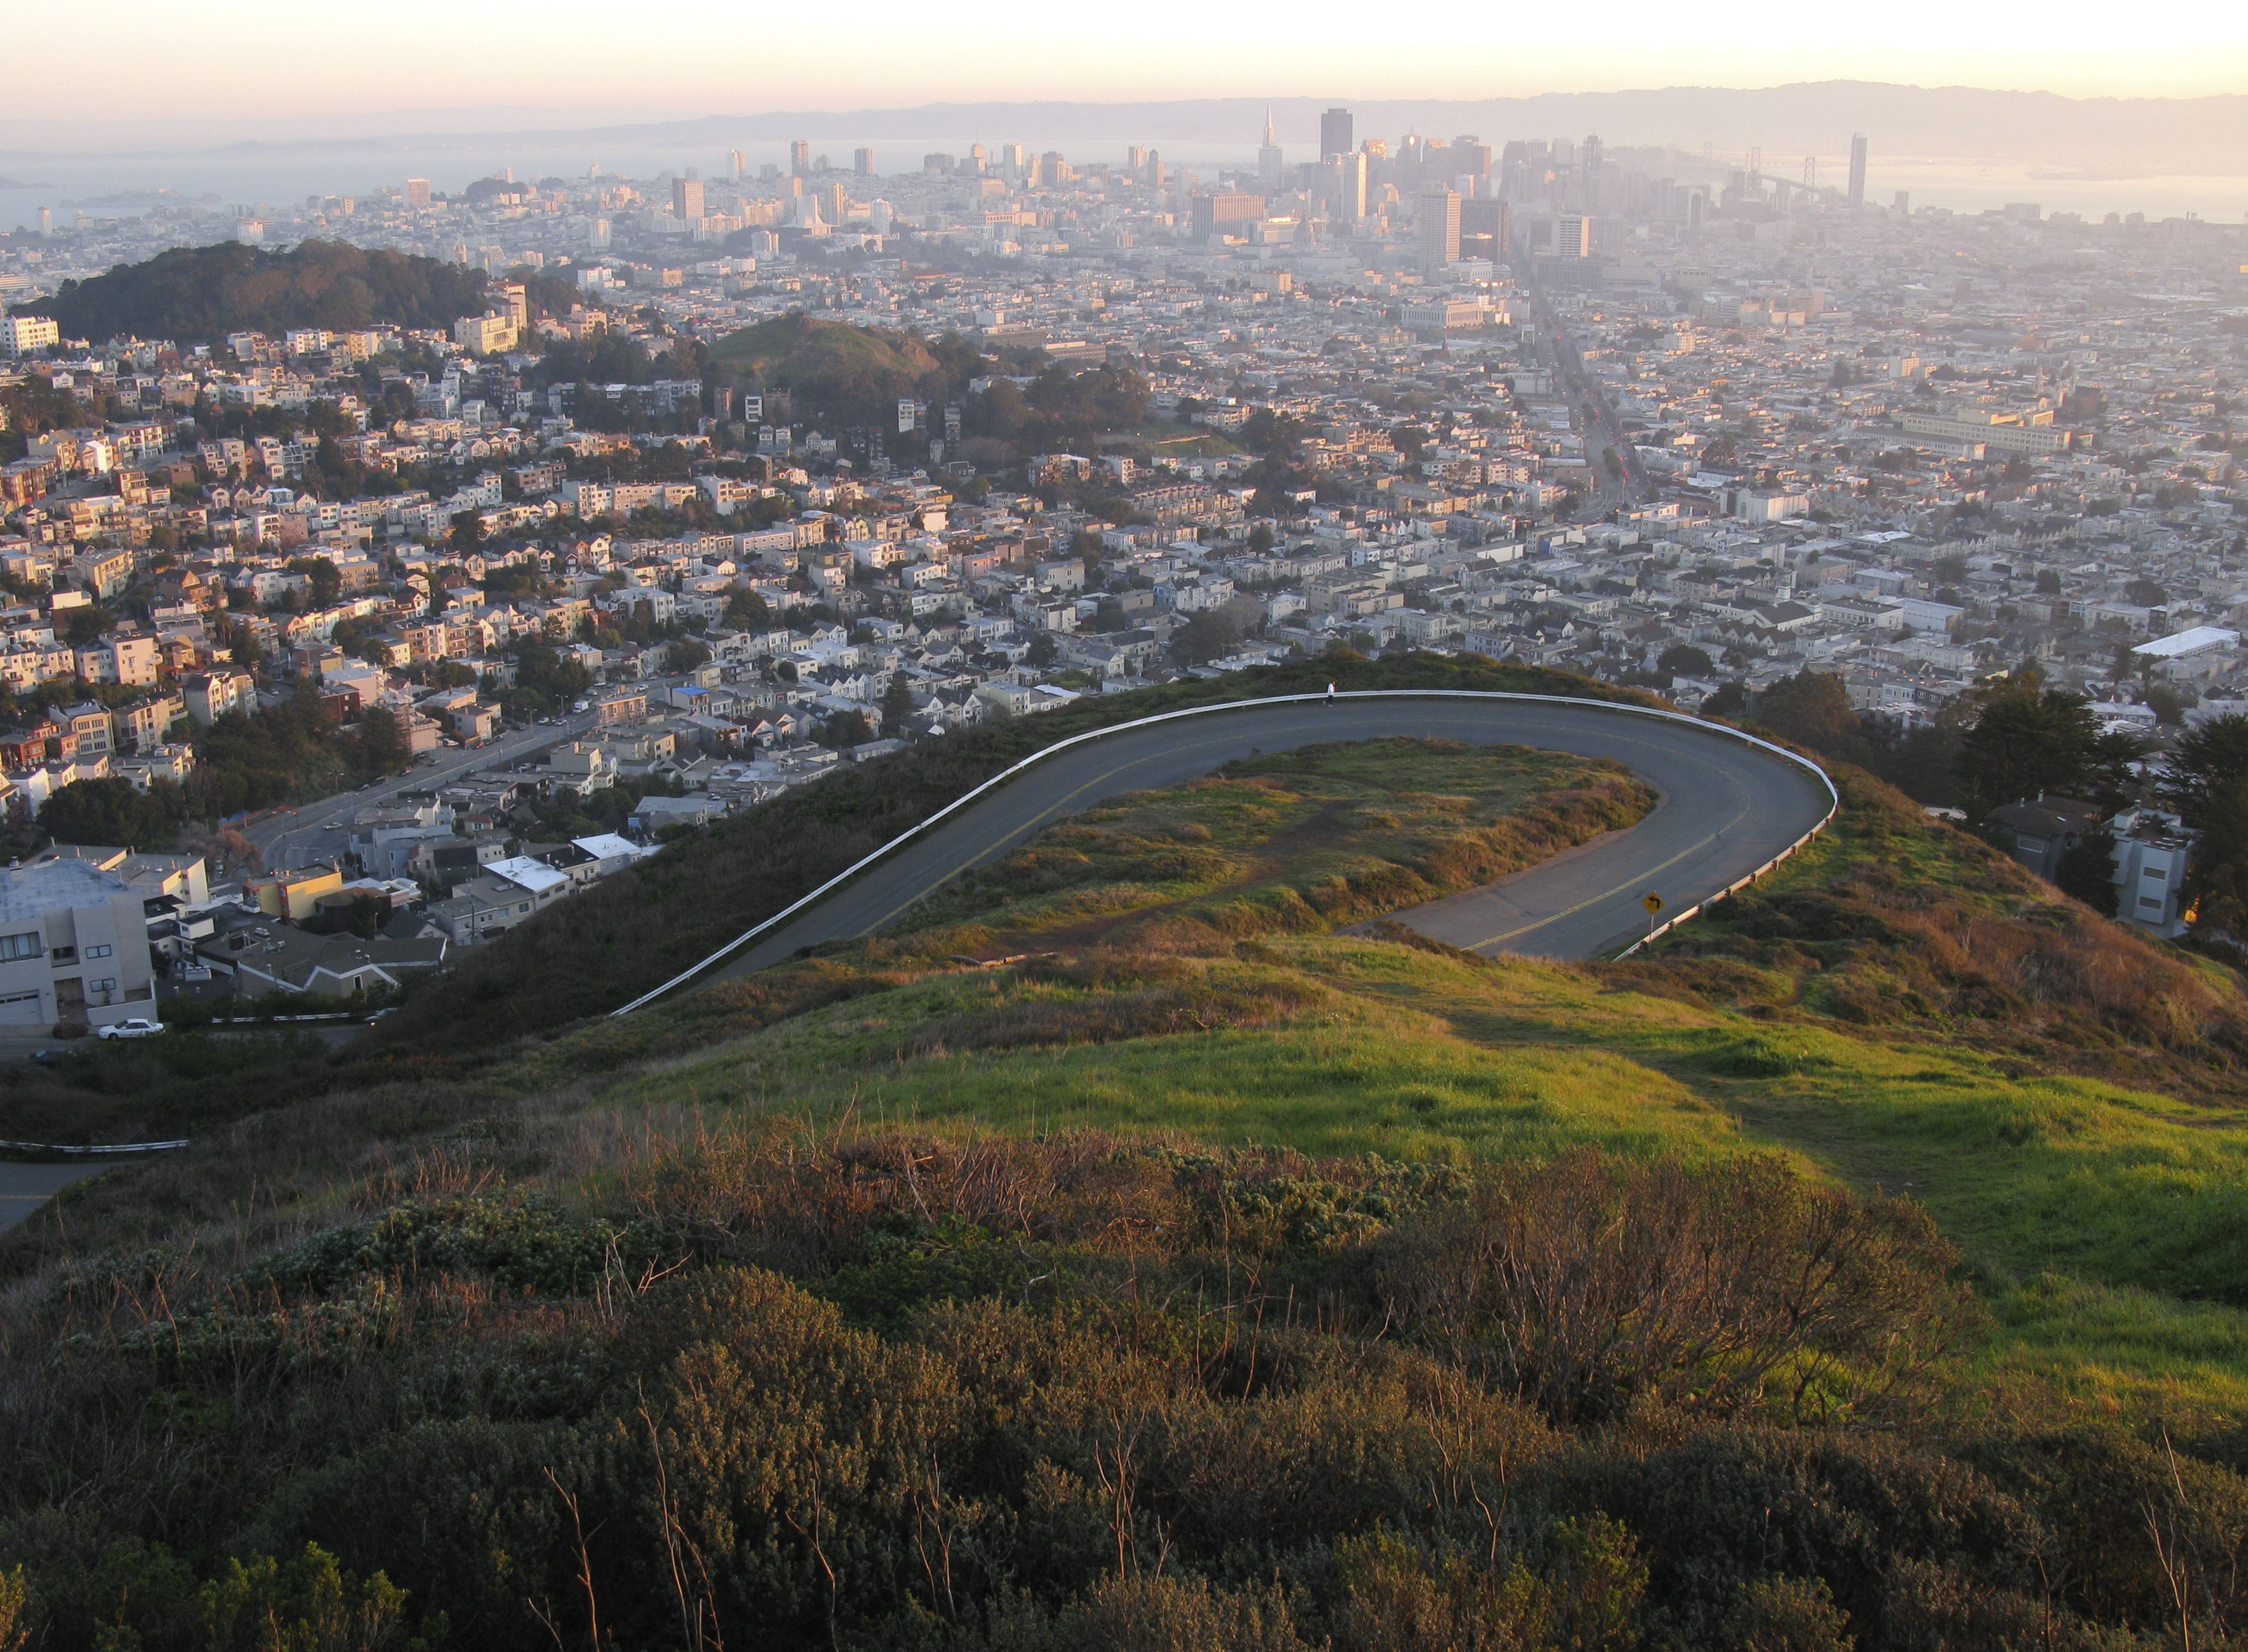 The Best Viewpoints In San Francisco